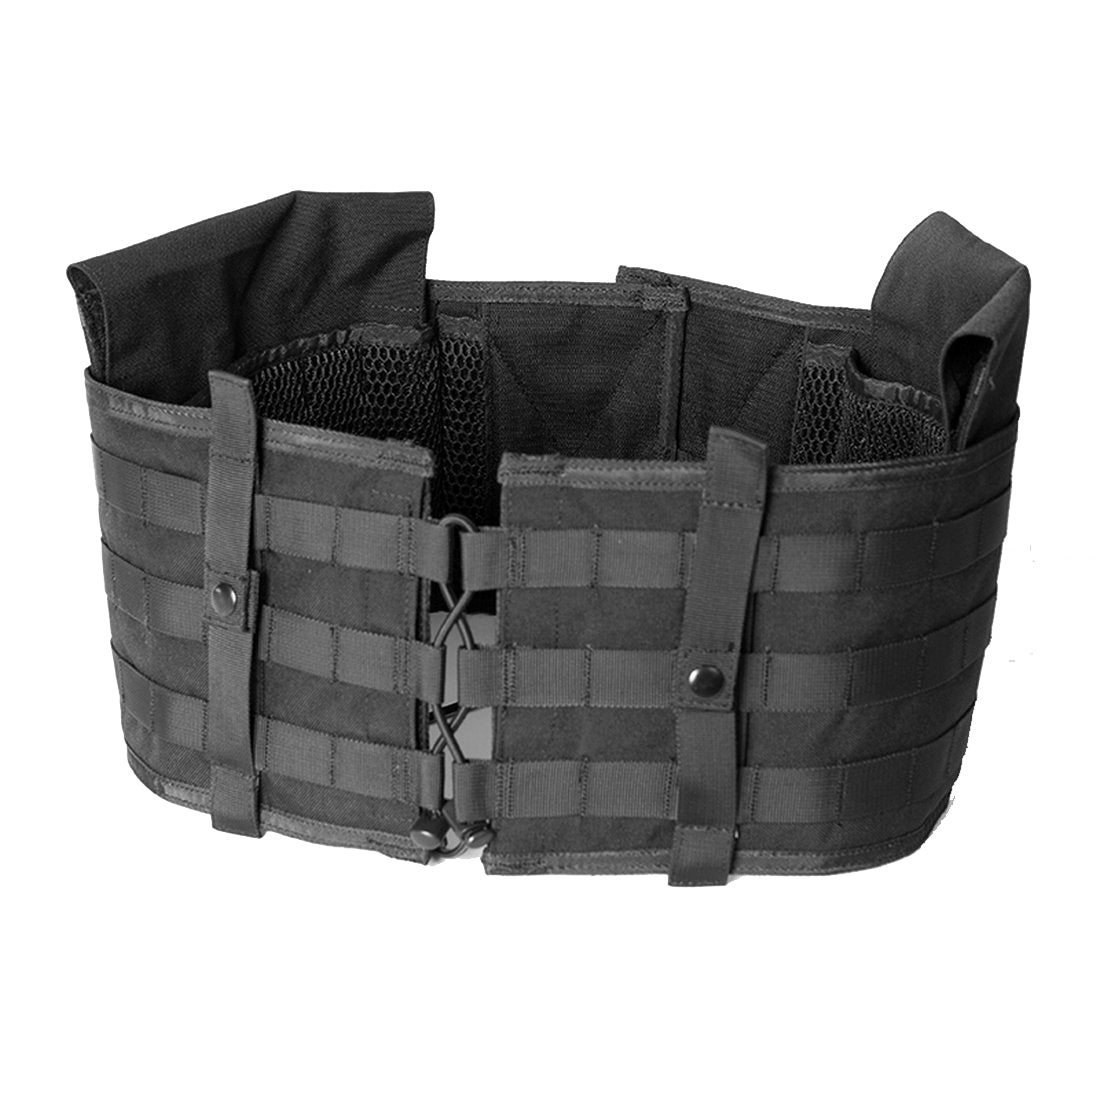 Tactical Plate Carrier Cummerbund - Black